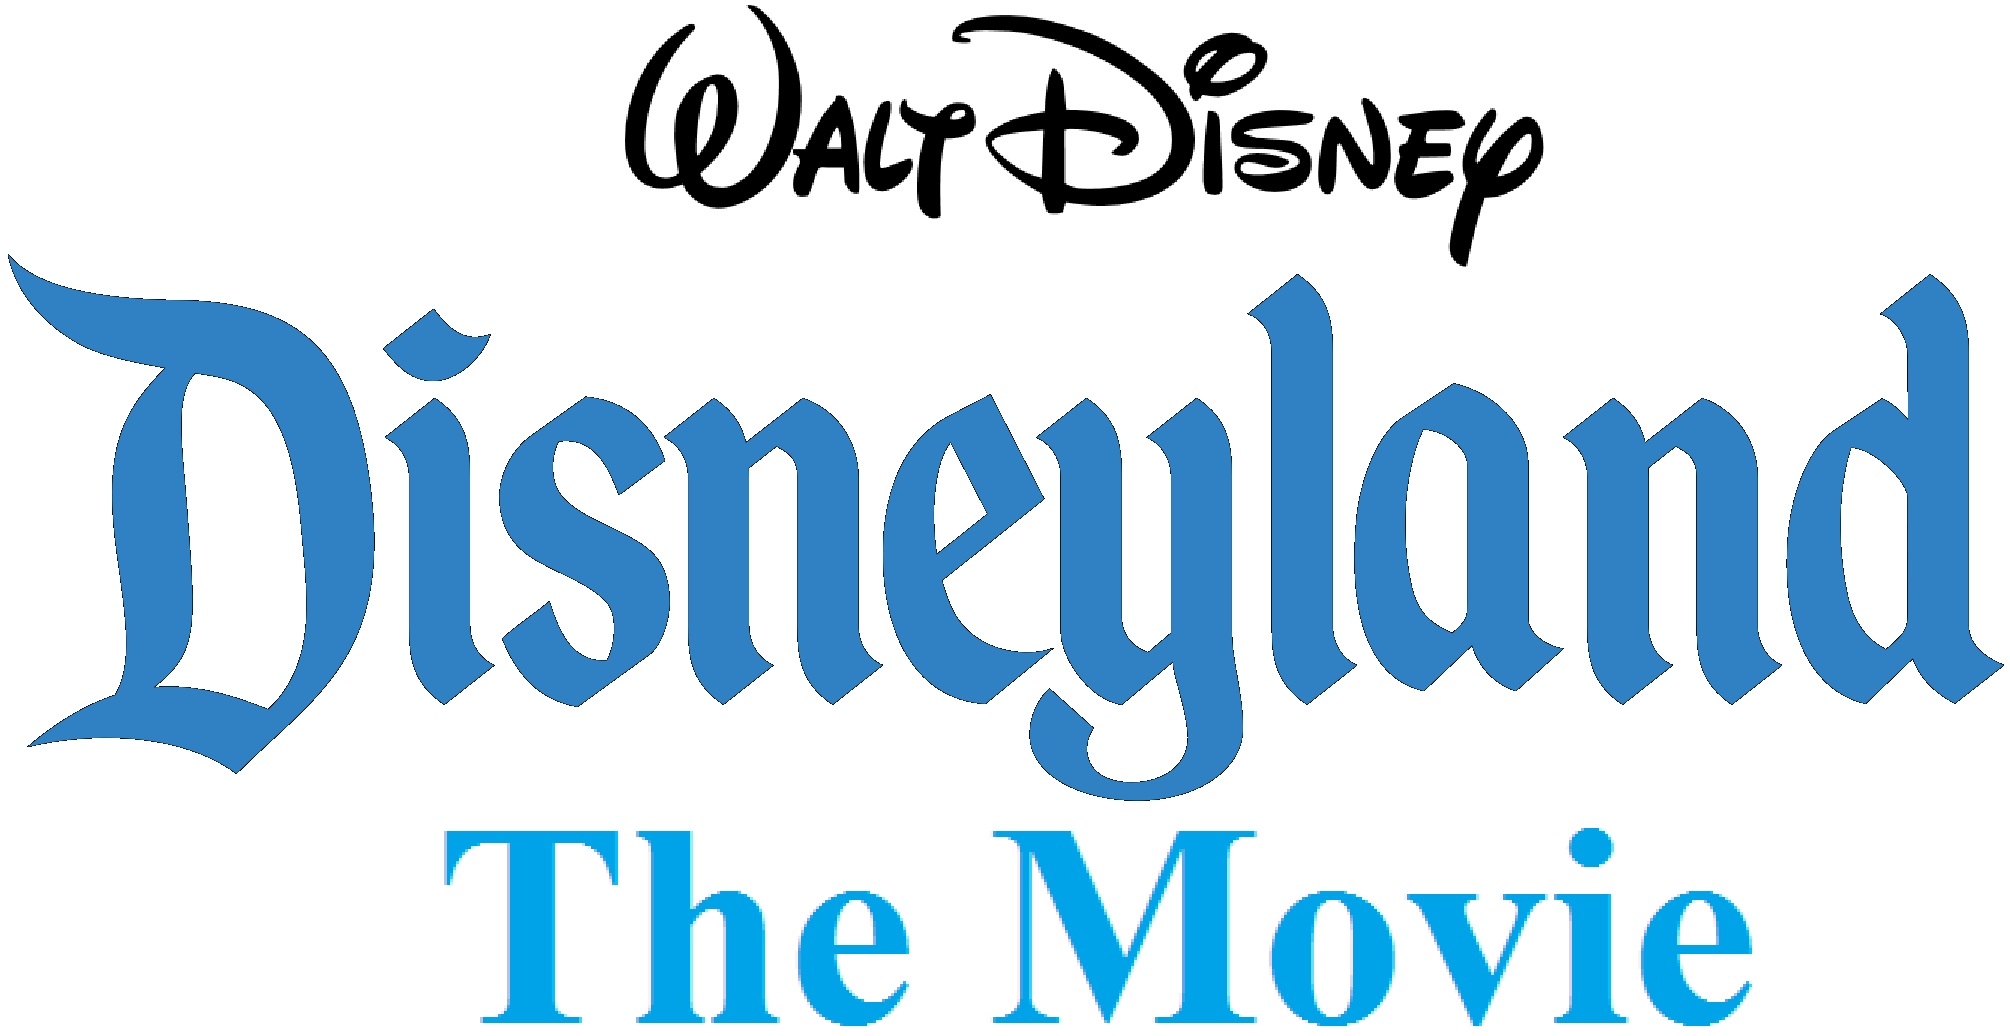 Disneyland: The Movie